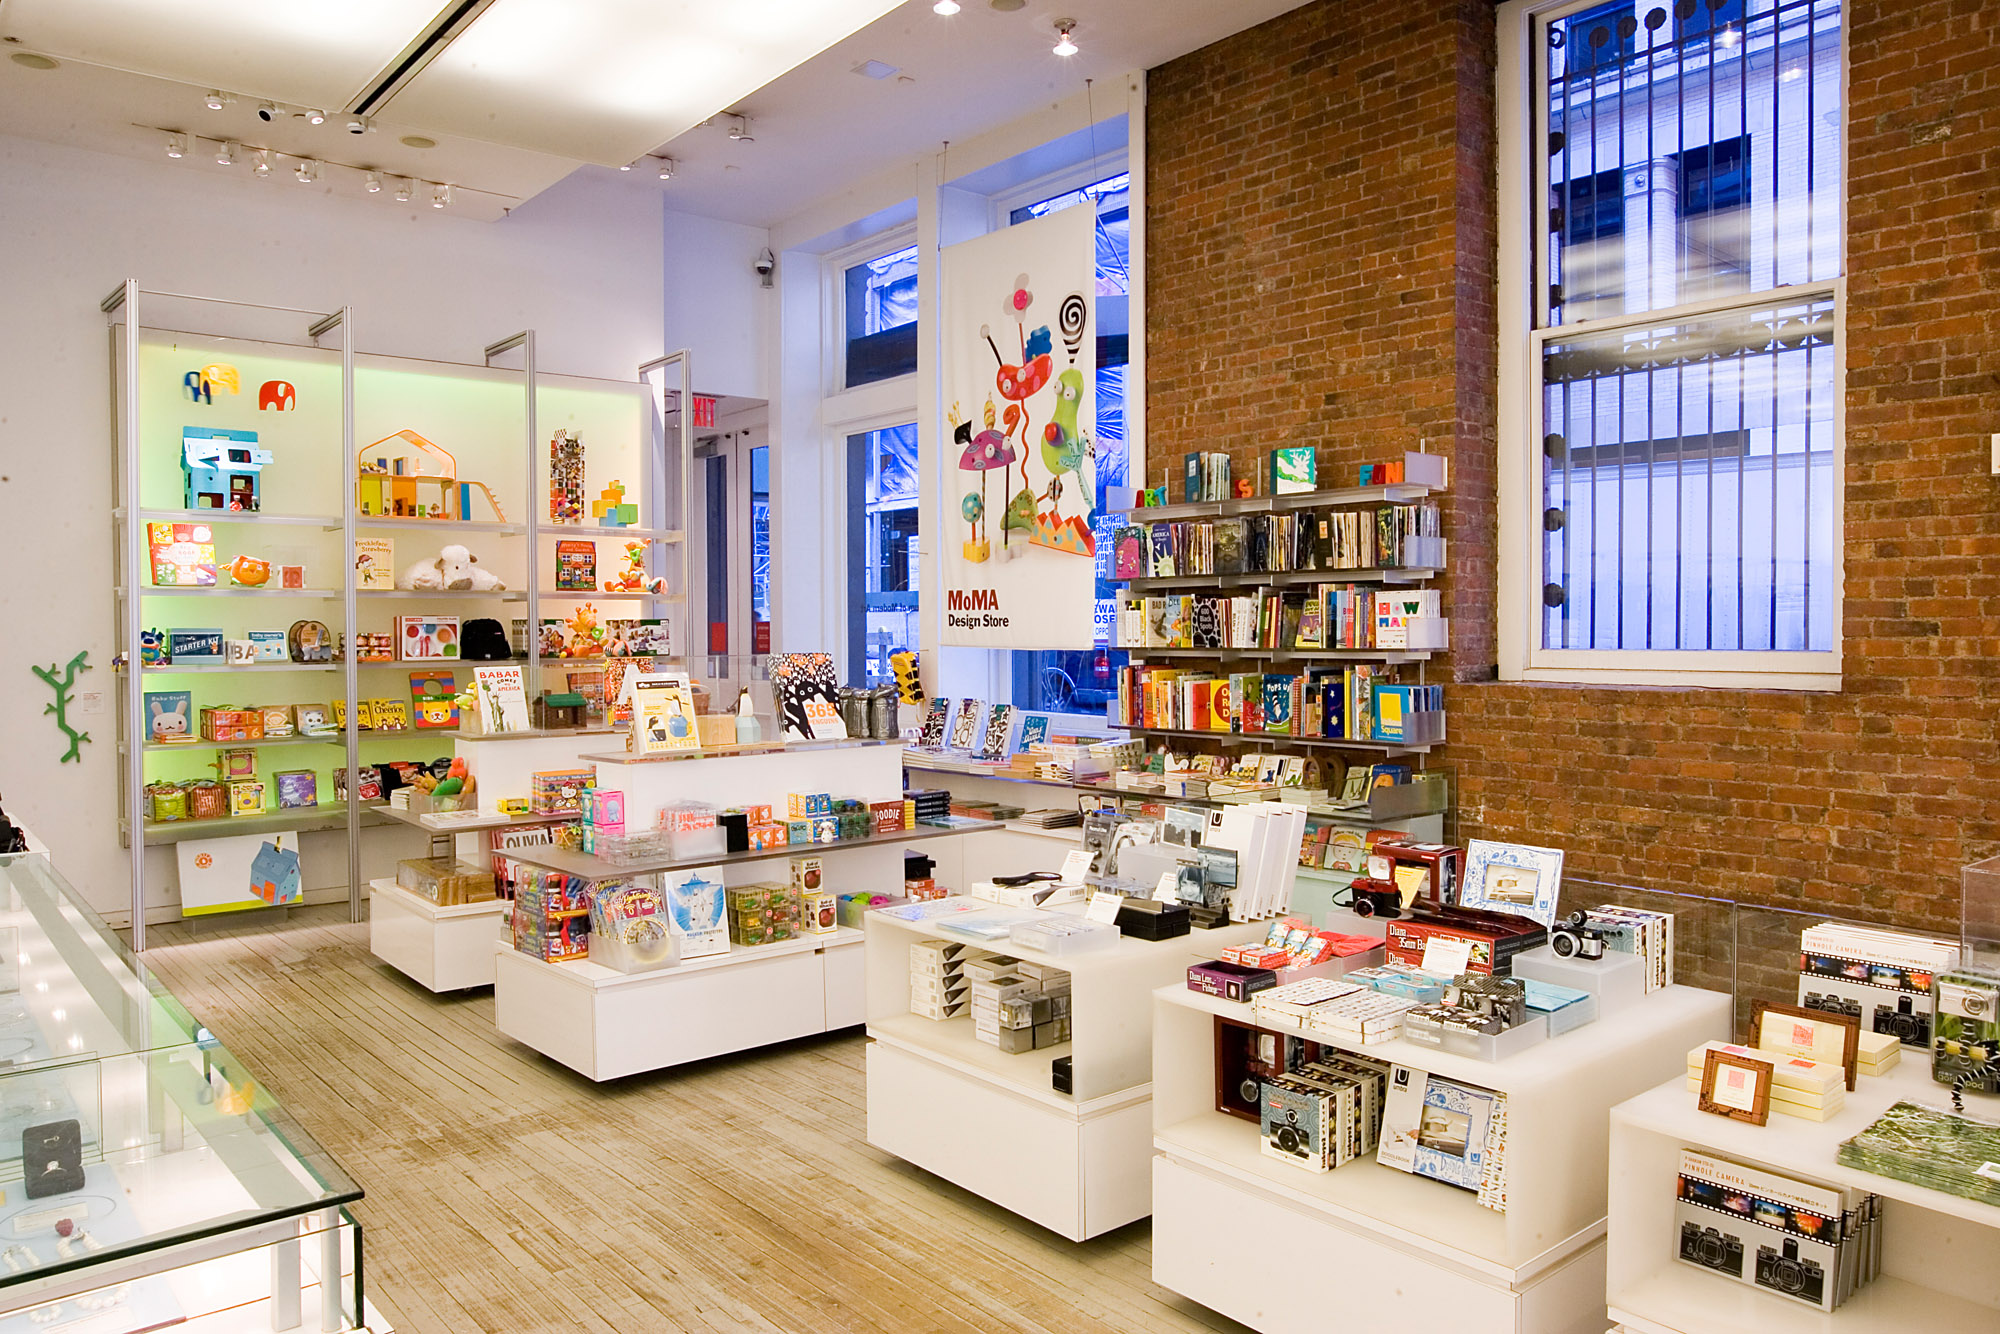 Moma Shop Moma Design Store Archives - Stylecarrot